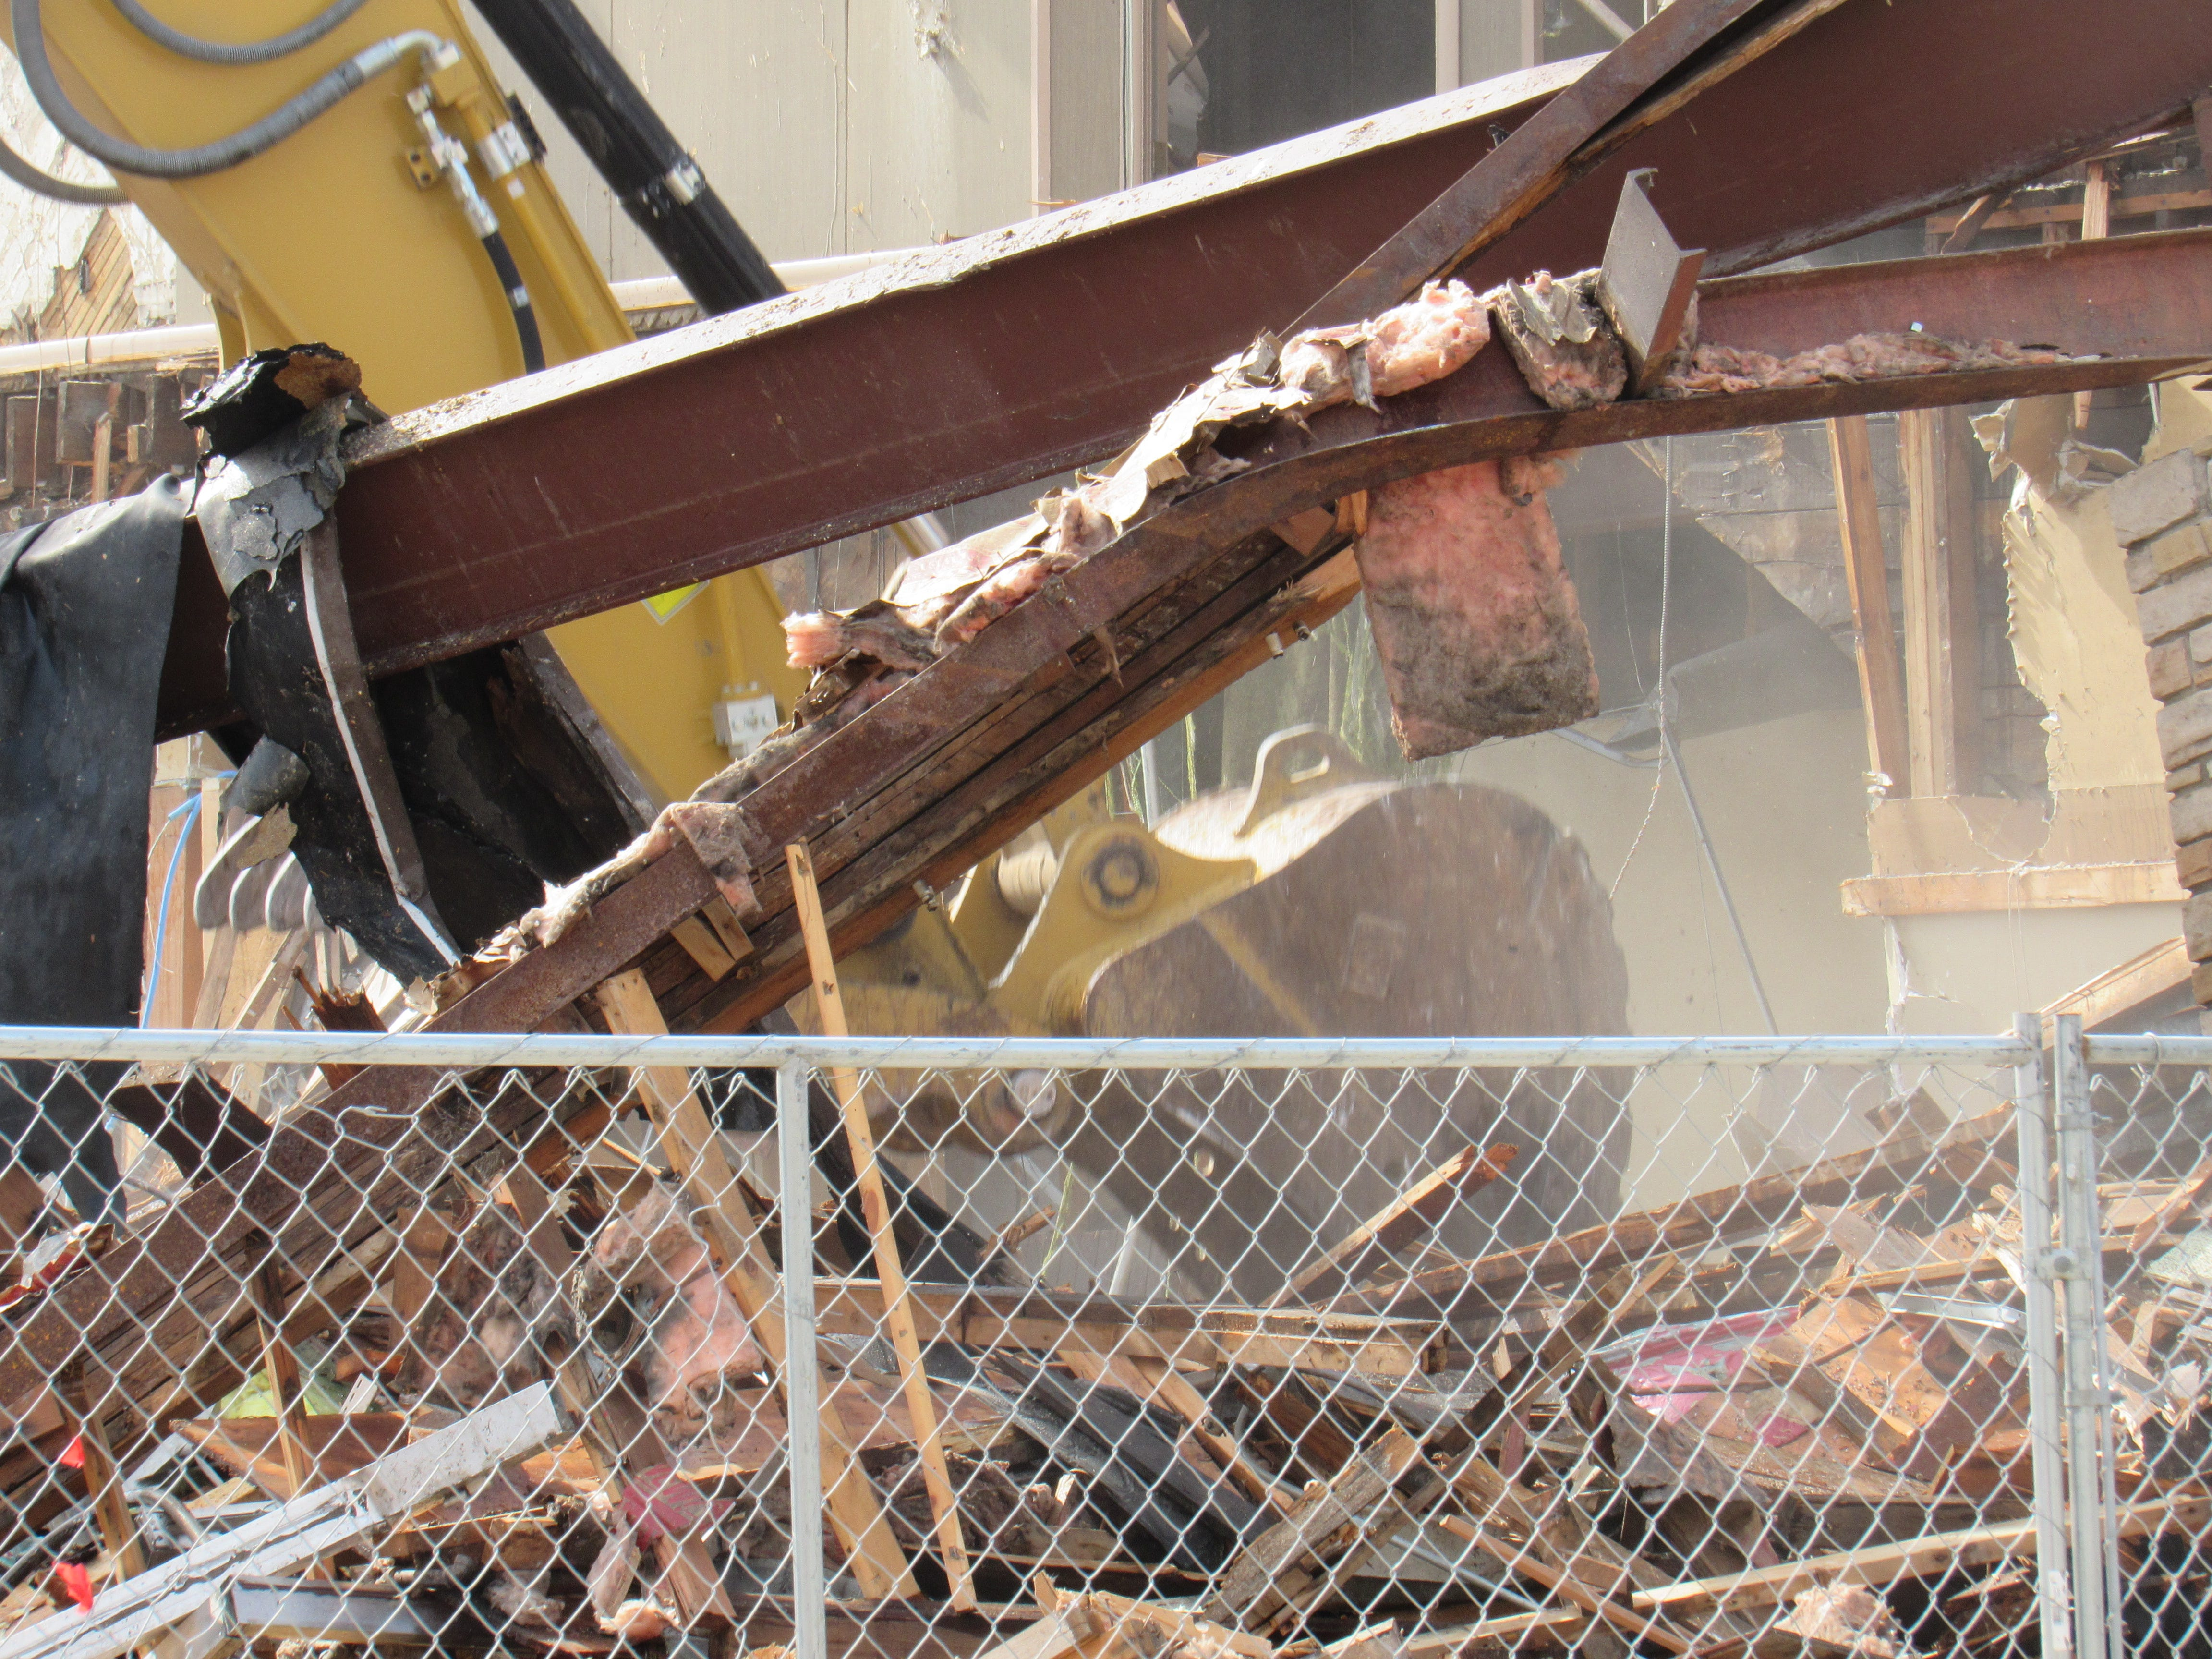 Crews continue to tear down the former Church's Drug Store building at the corner of West Grand Avenue and Third Avenue South in downtown Wisconsin Rapids on Monday, Sept. 24, 2018. The Key City Hotel operated in the building from 1884 to the early 1900s. Then Sam Church ran it as a drug store from 1904 until it closed in 1993. It became a video archery business called Boone's Archery in 2000 and then Bowe's Archery in 2001.